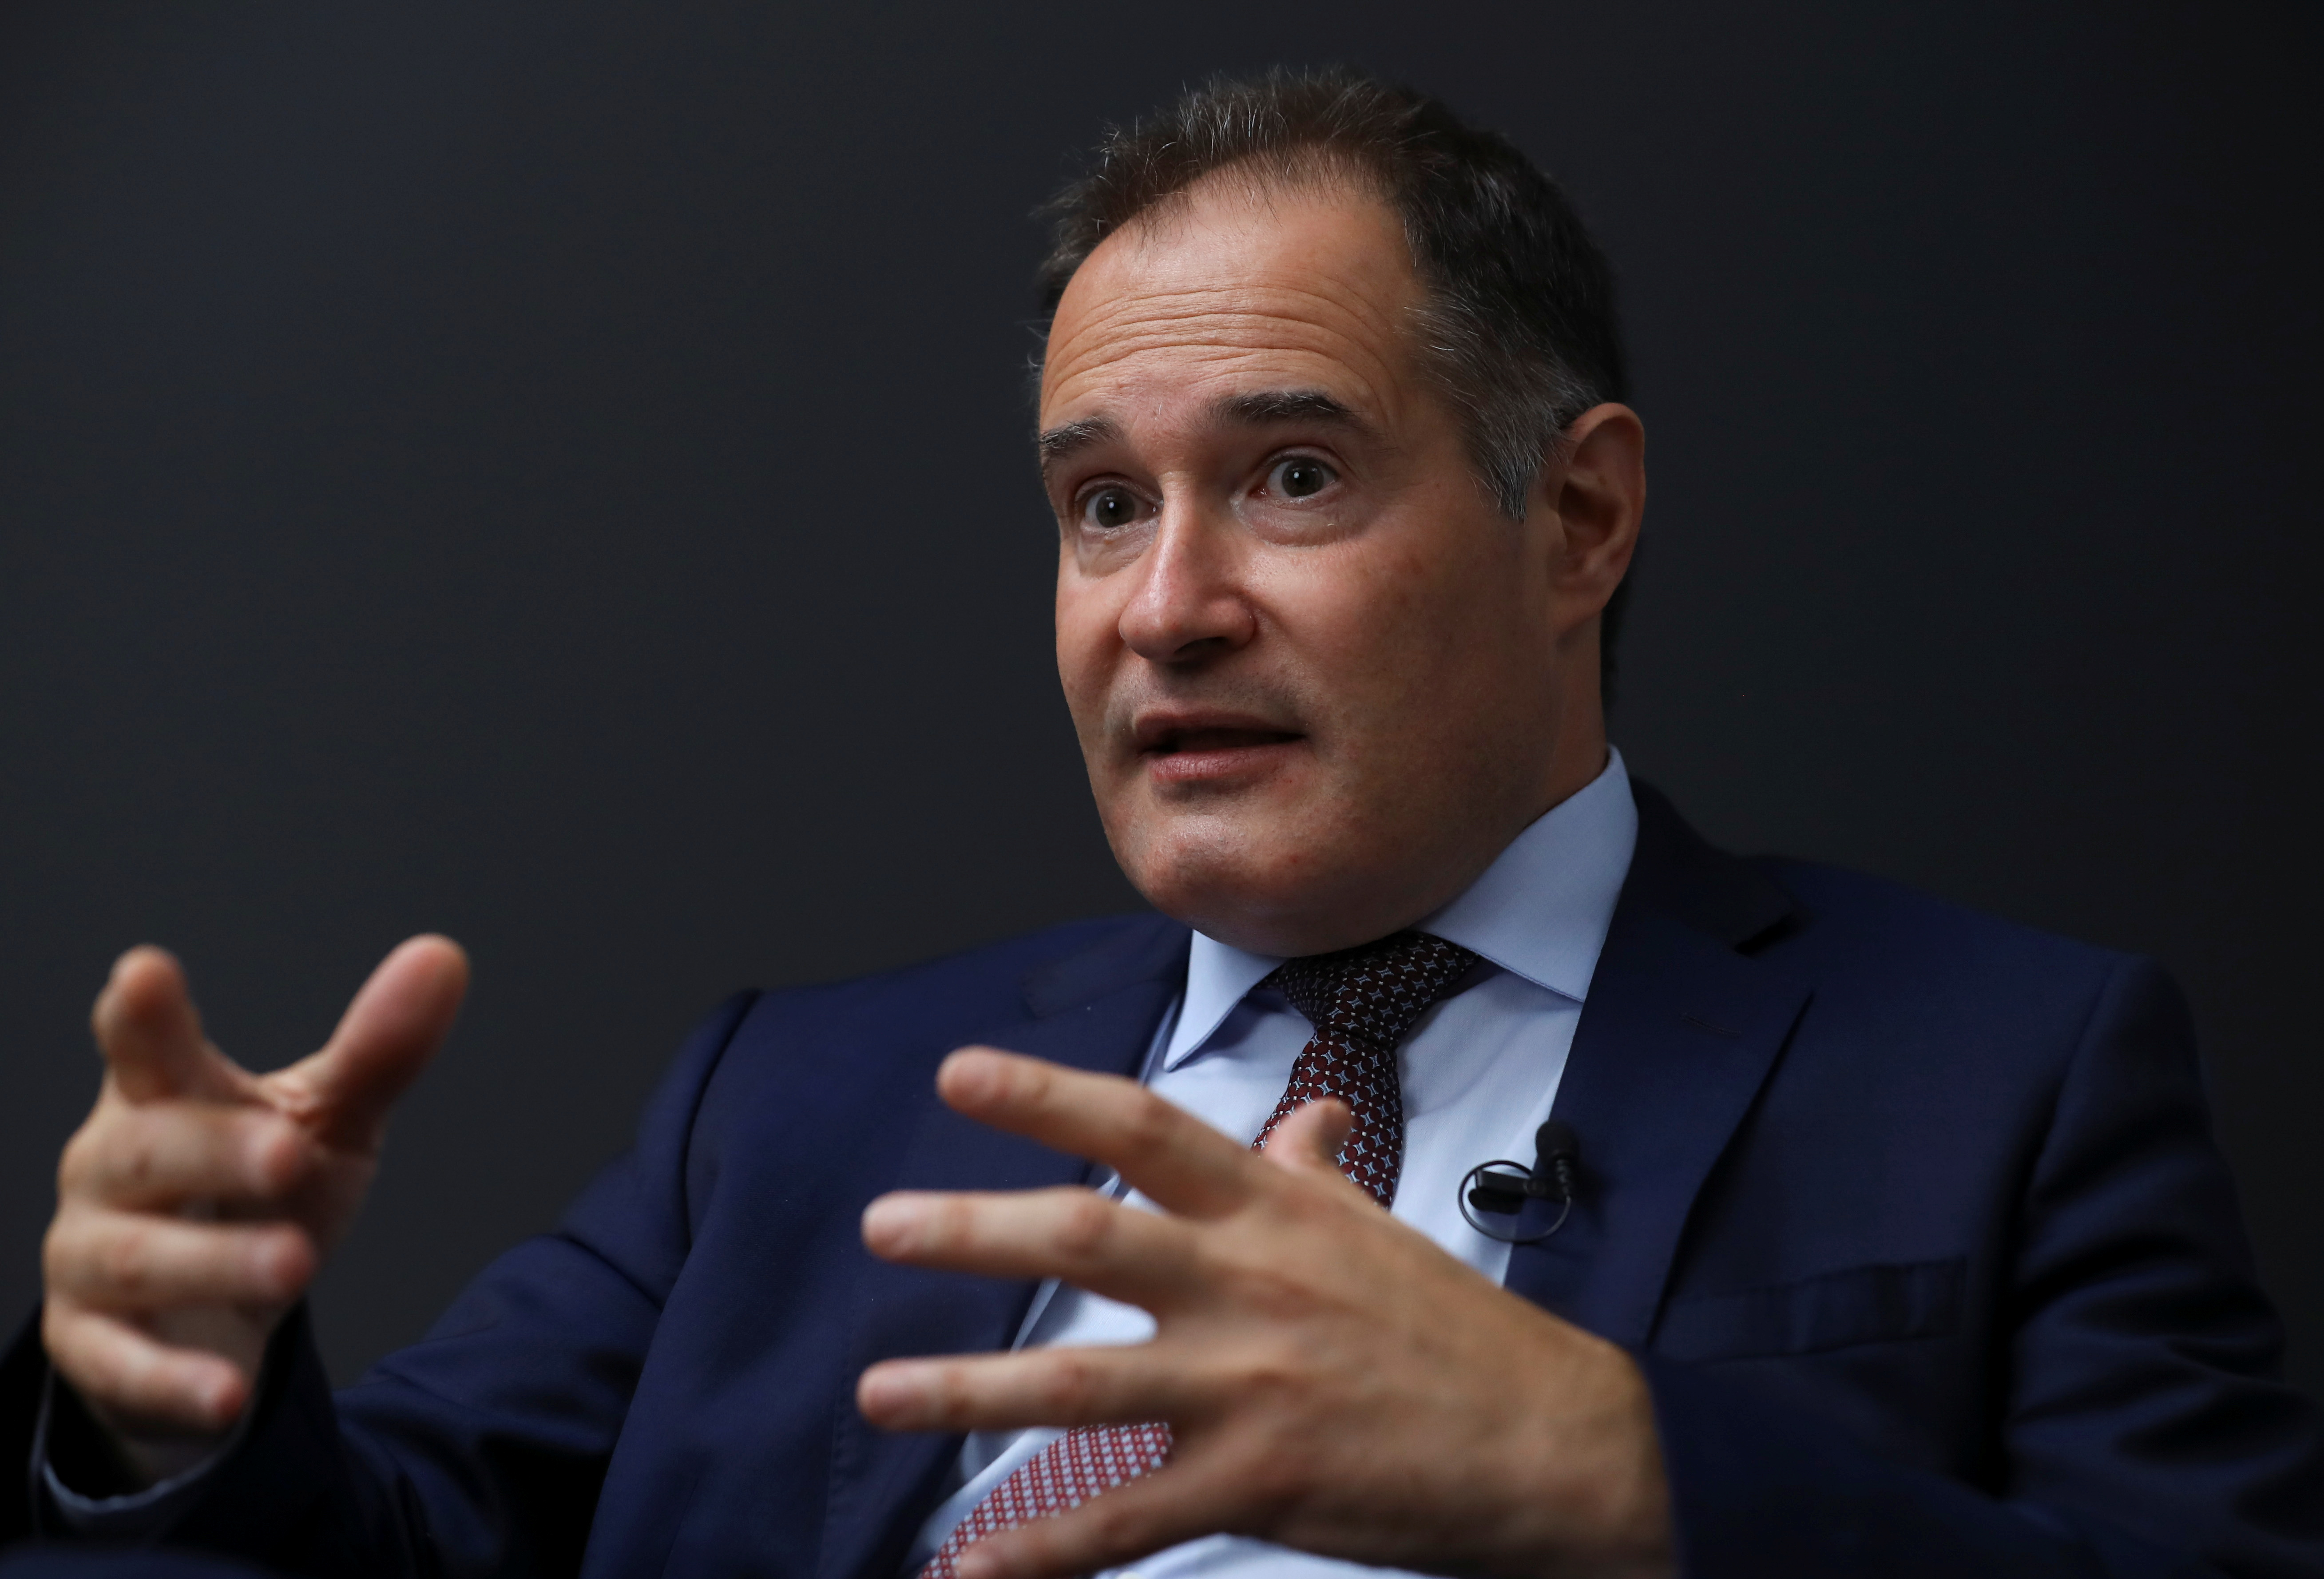 Fabrice Leggeri, Executive Director of EU border agency Frontex, speaks during an interview with Reuters at Frontex headquarters in Warsaw, Poland September 8, 2021. REUTERS/Kacper Pempel